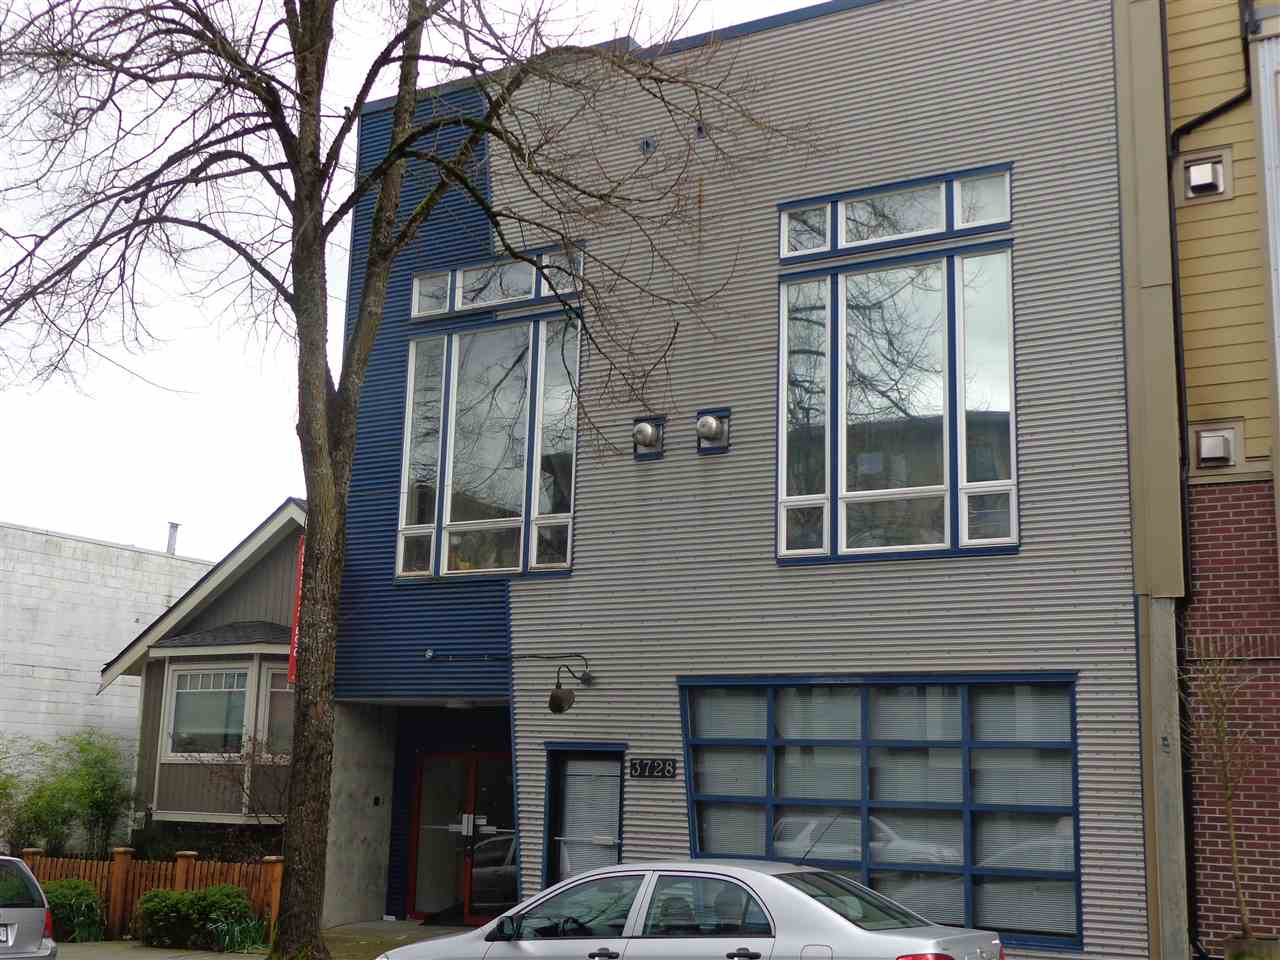 Photo 8: 3 3726 COMMERCIAL STREET in Vancouver: Victoria VE Condo for sale (Vancouver East)  : MLS(r) # R2037396